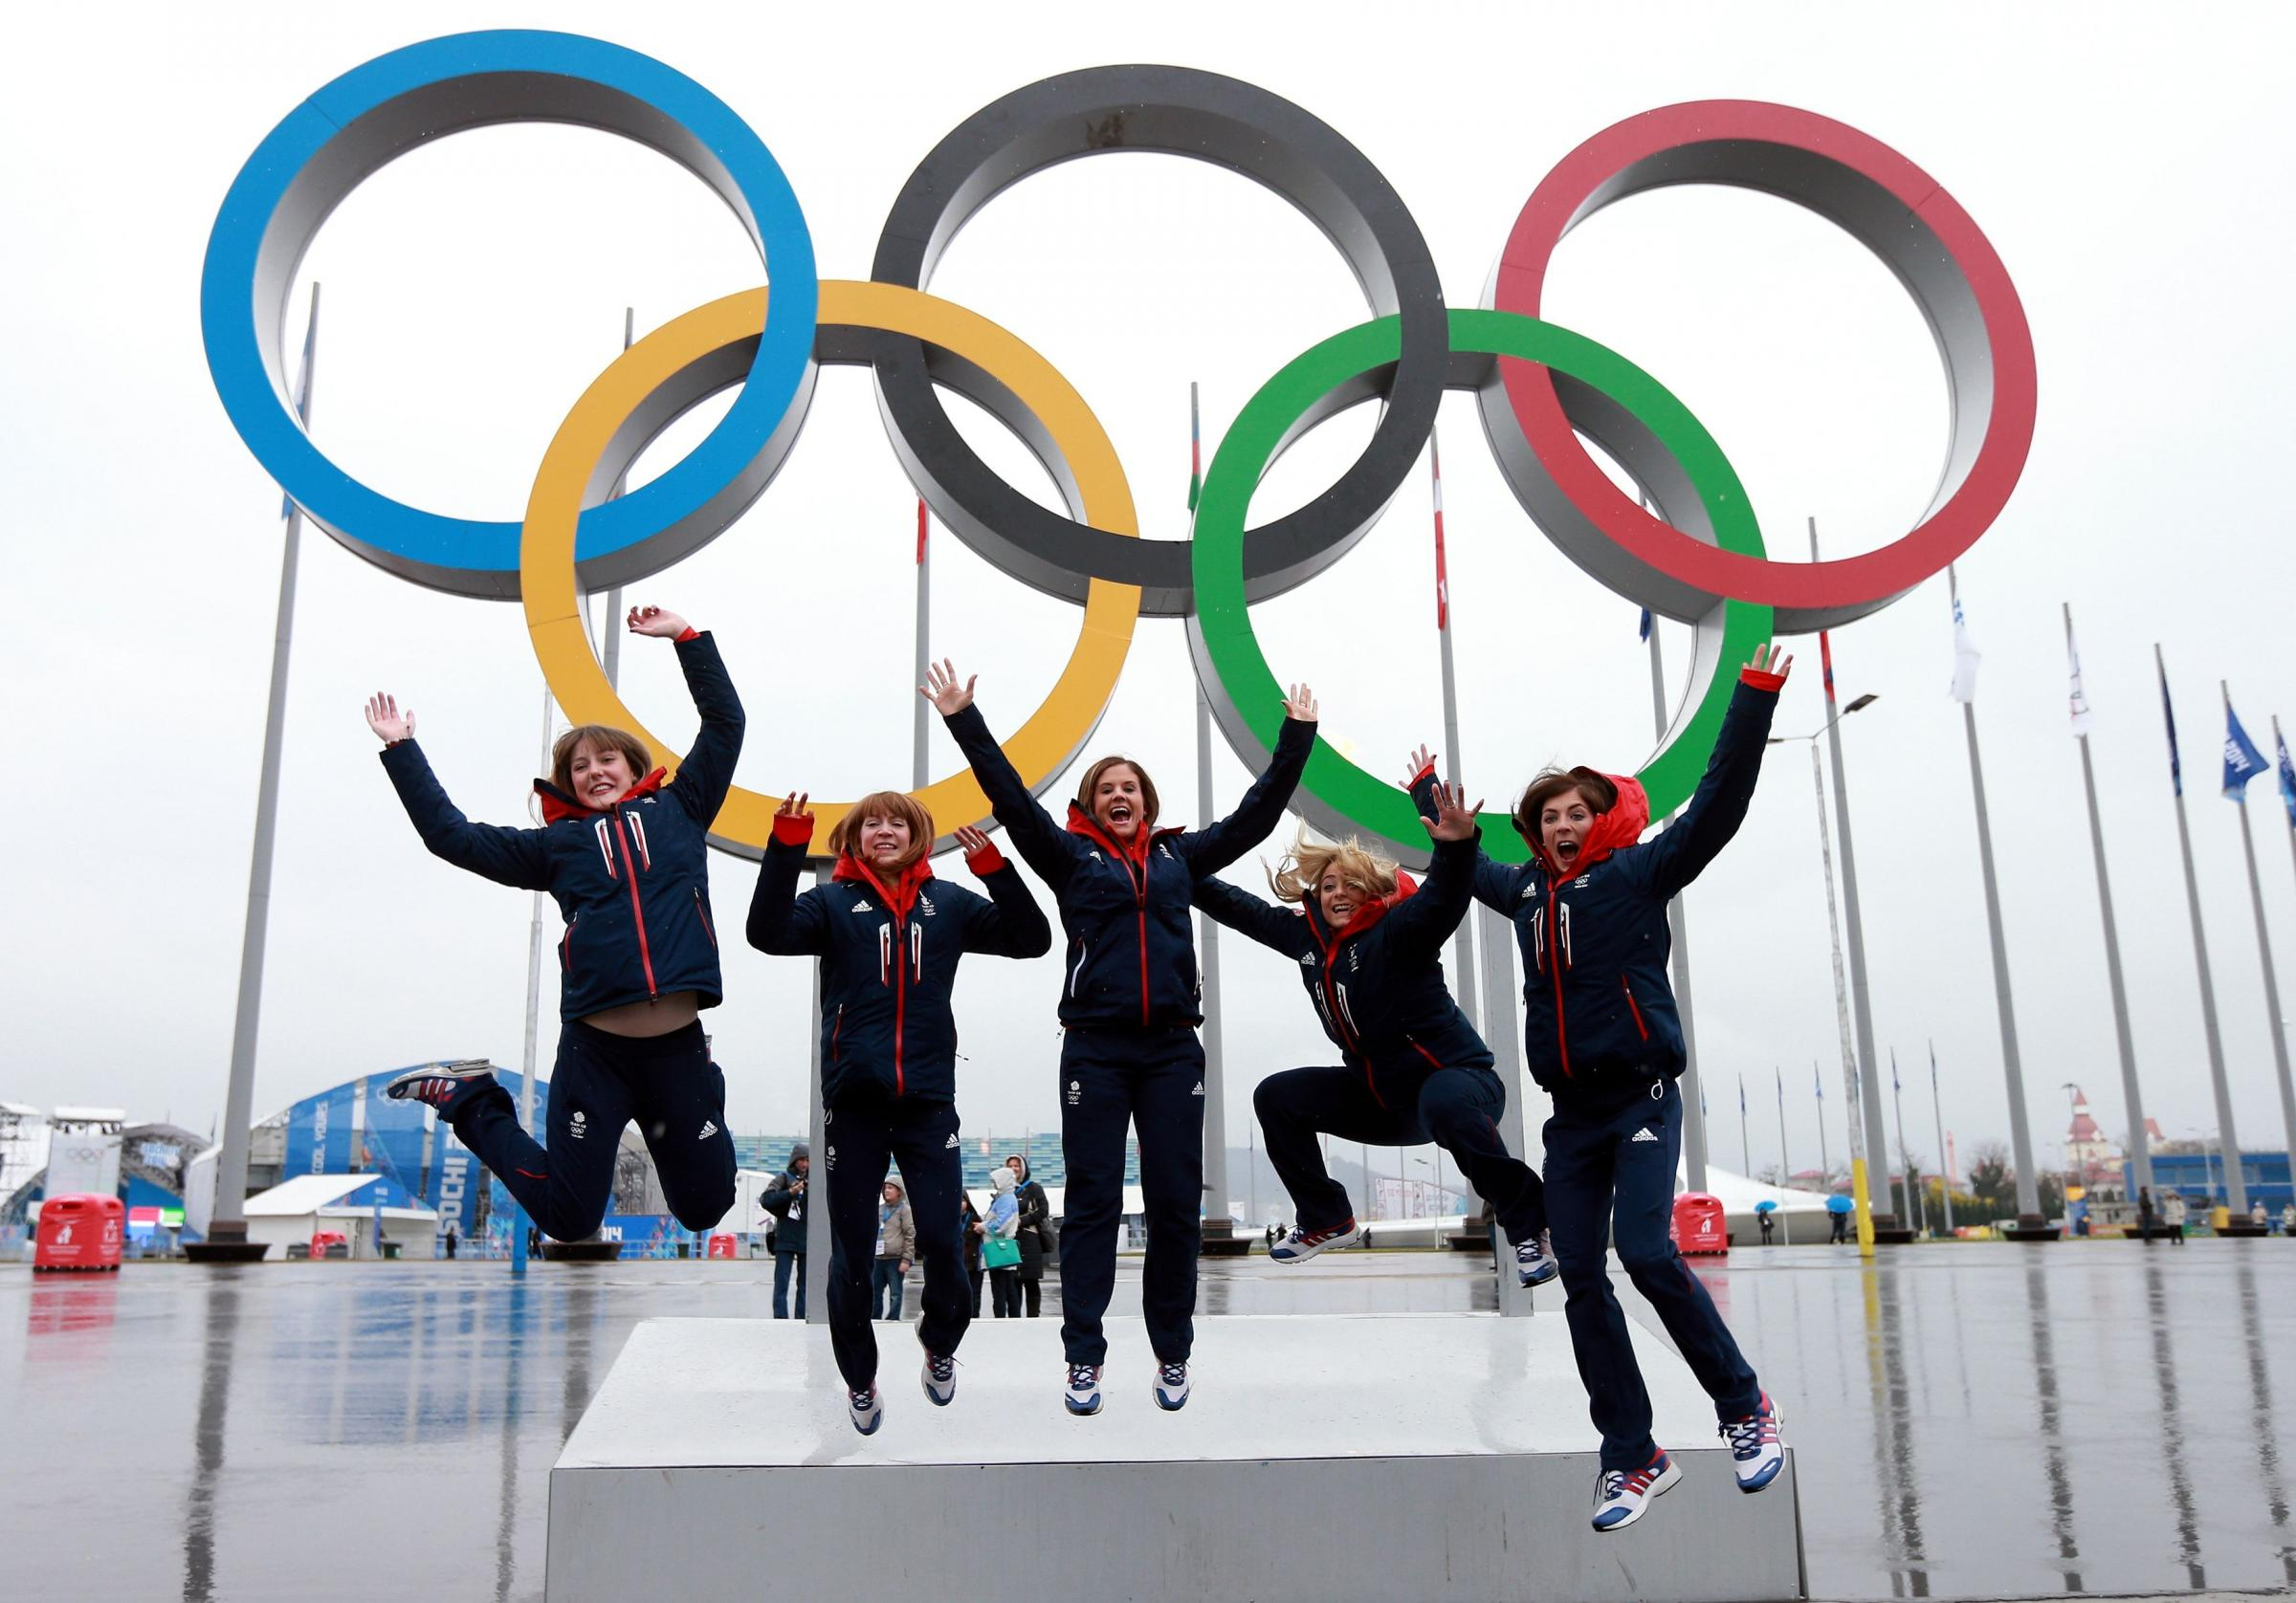 Great Britain's (left to right) Lauren Gray, Claire Hamilton, Vicki Adams, Anna Sloan and Eve Muirhead are all smiles at Olympic Park in Sochi, Russia